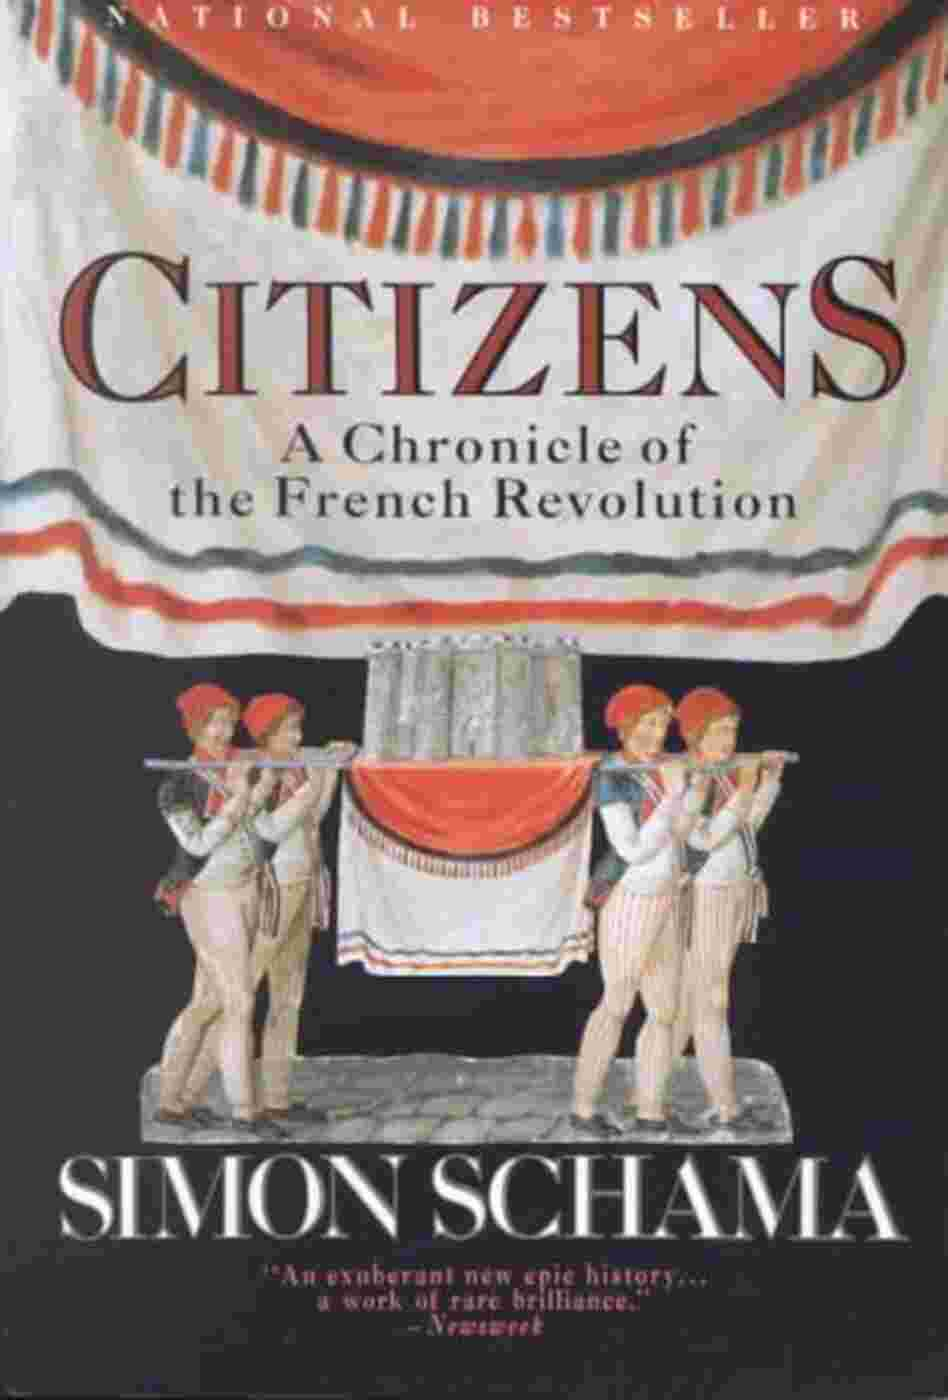 a history and the importance of the french revolution The french revolution offered many views about the role of women  political  and historical encyclopedia of women by christine fauré routledge, 2003.